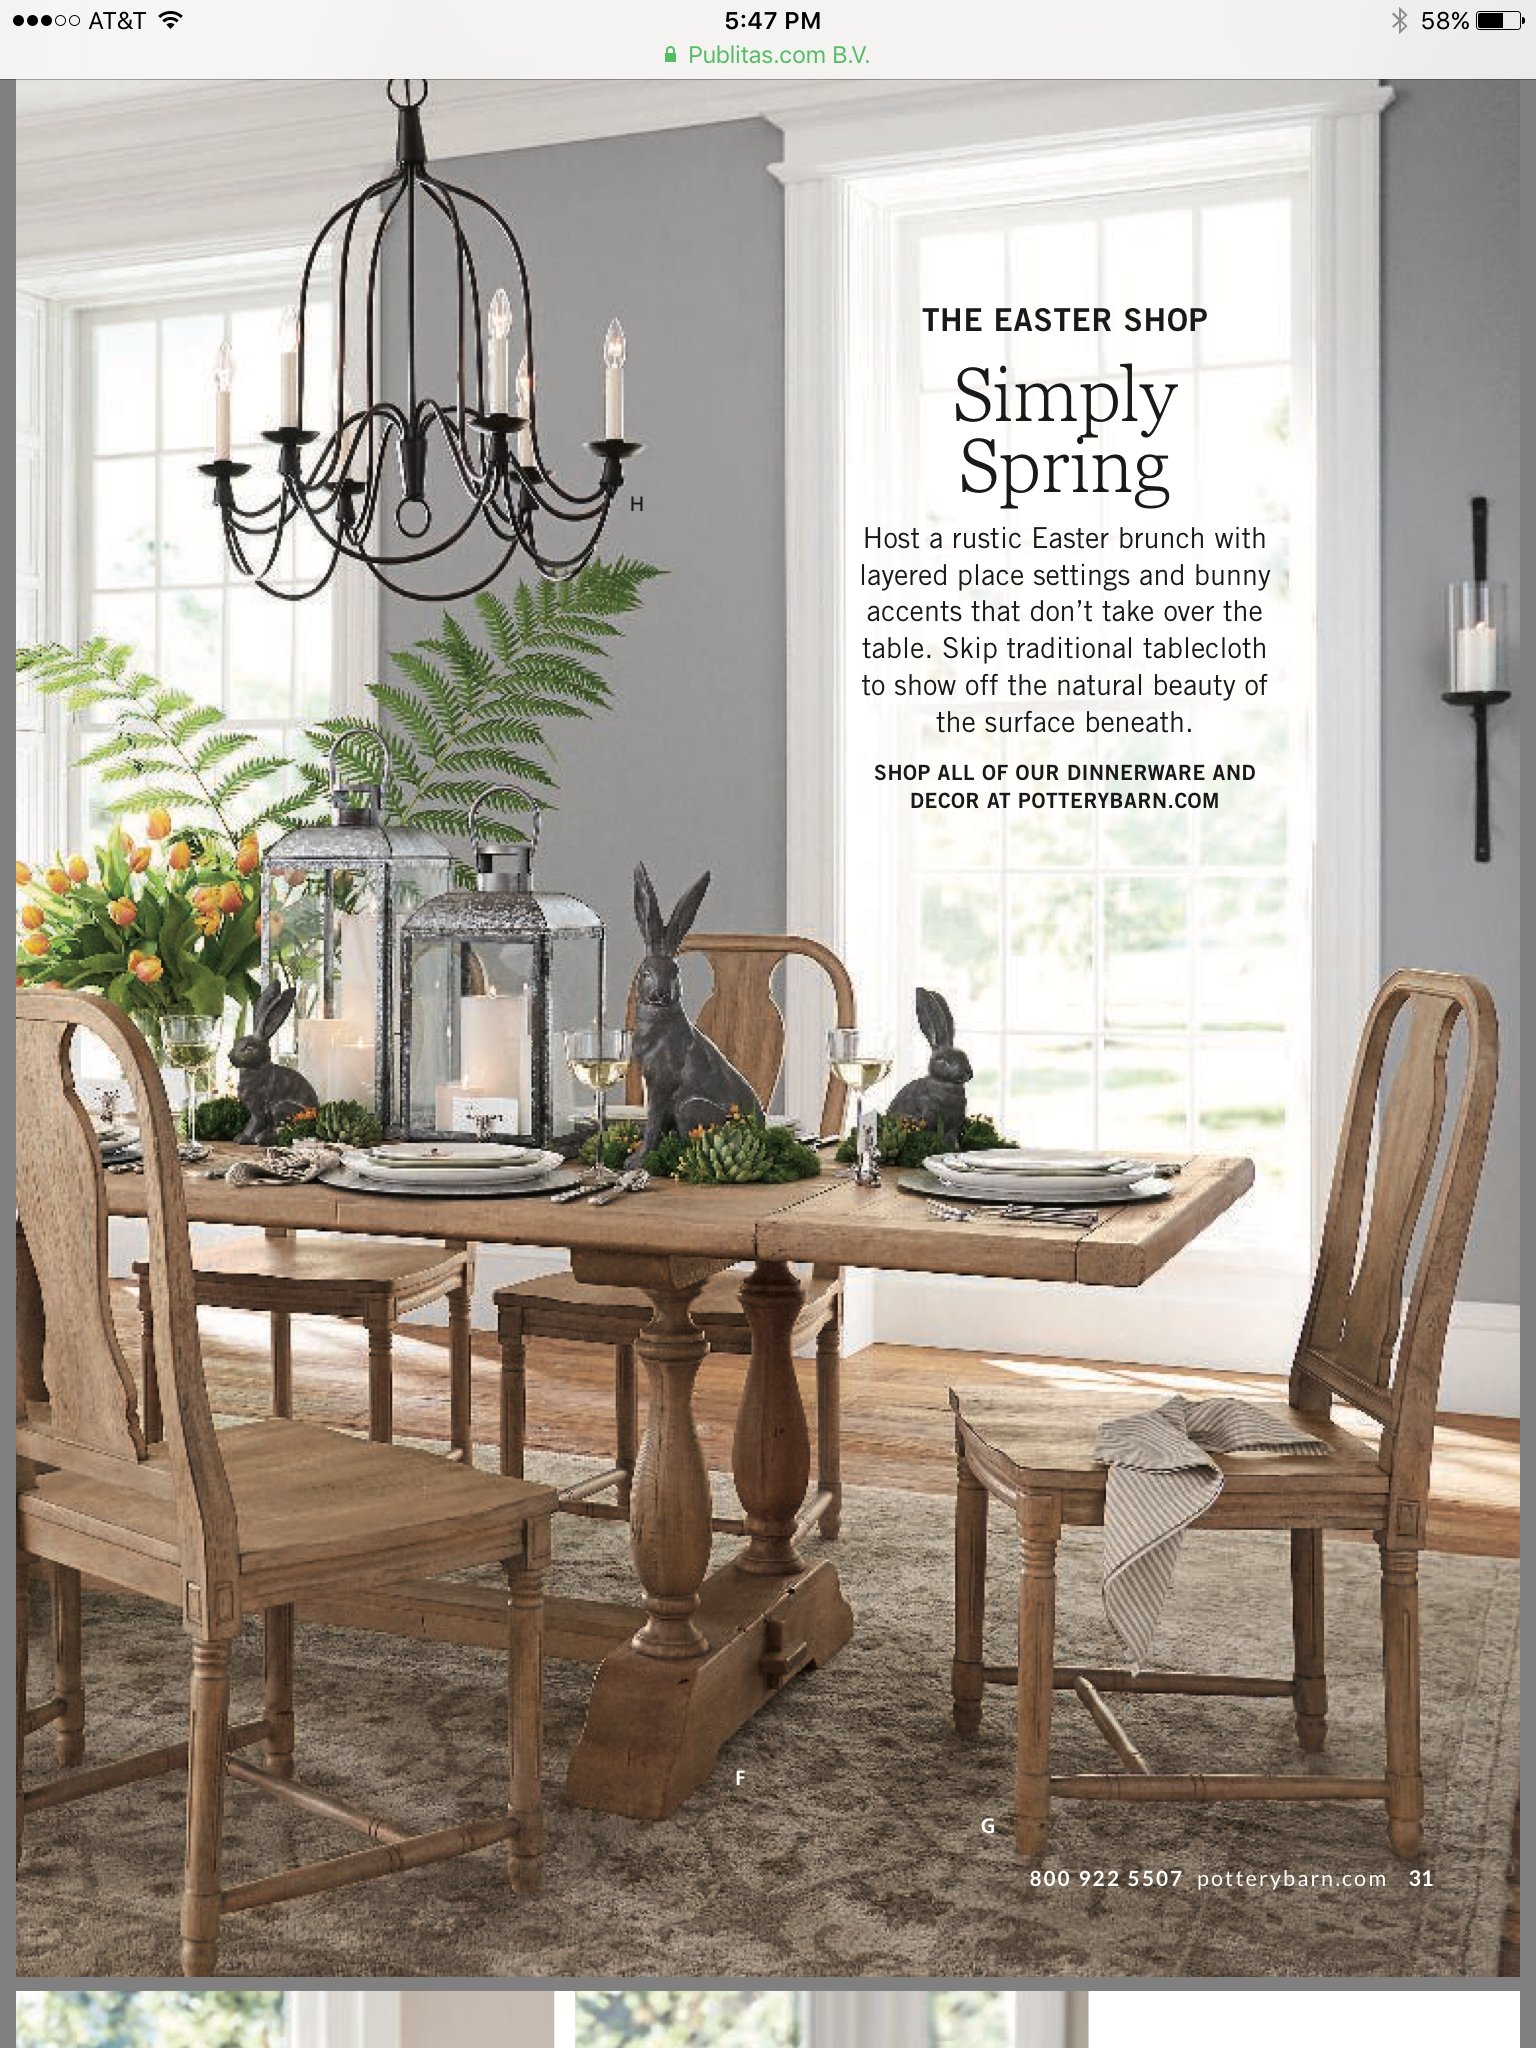 Parkmore Dining Table Marby Dining Chairs Armonk